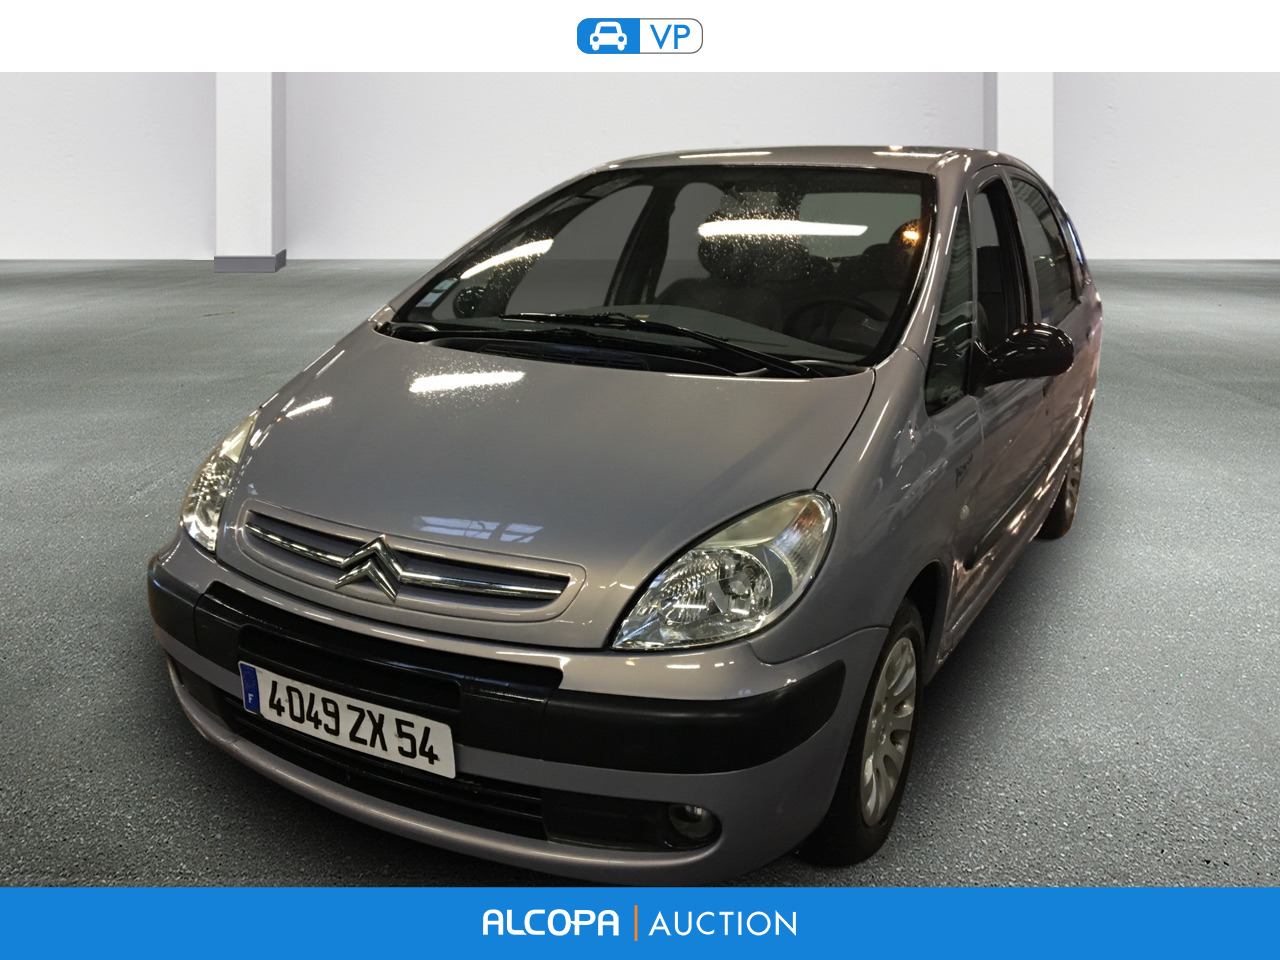 citroen xsara picasso 10 1998 01 2011 xsara picasso 1 6 hdi 110 pack alcopa auction. Black Bedroom Furniture Sets. Home Design Ideas